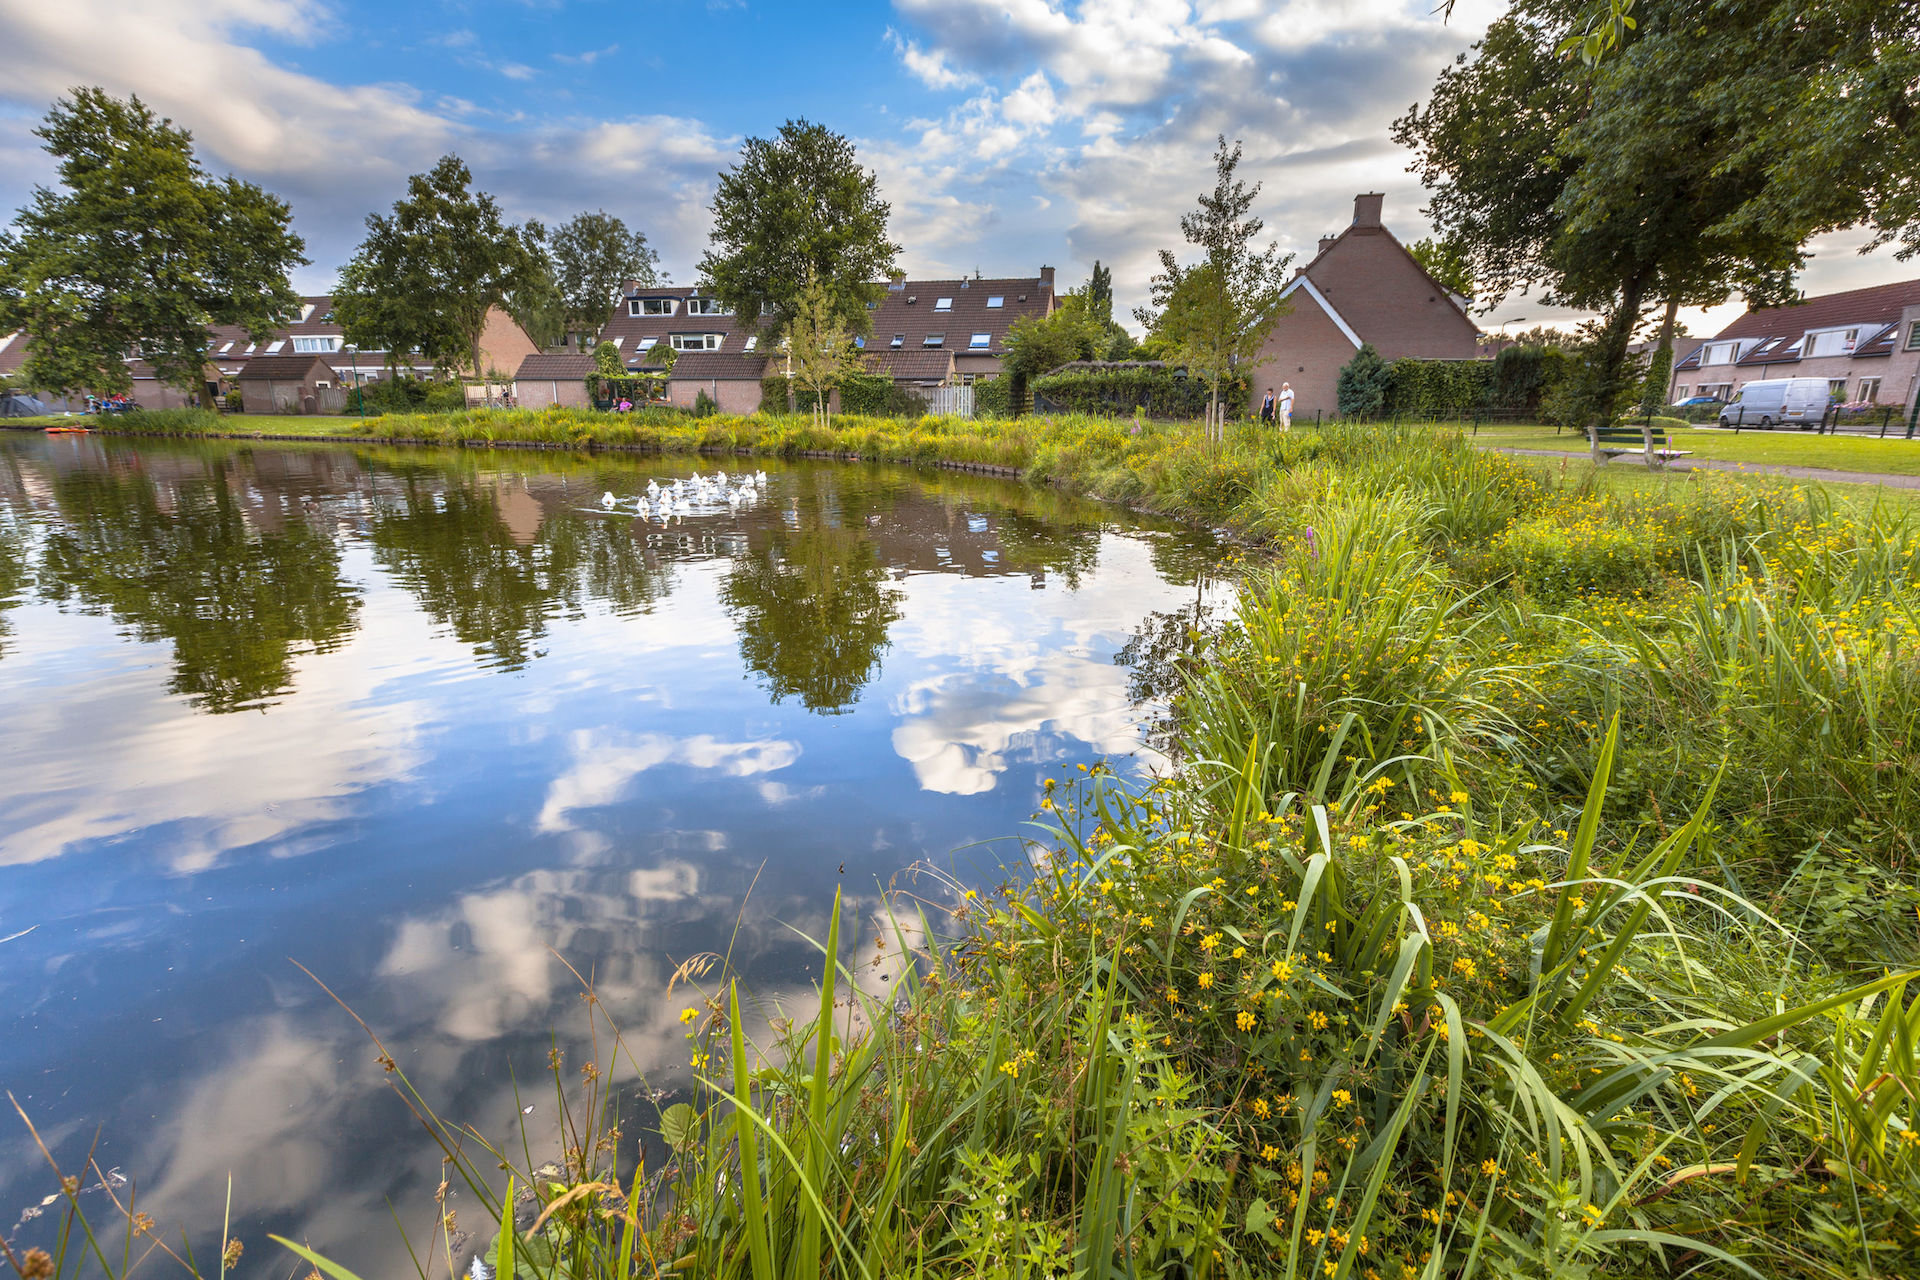 Buying a home in a flood plain or flood zone